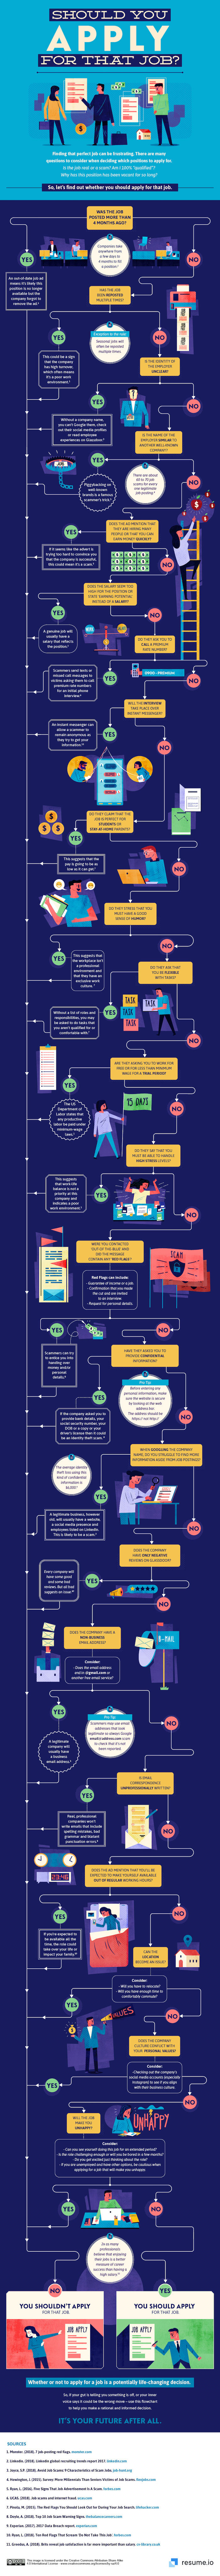 Should You Apply for That Job Infographic